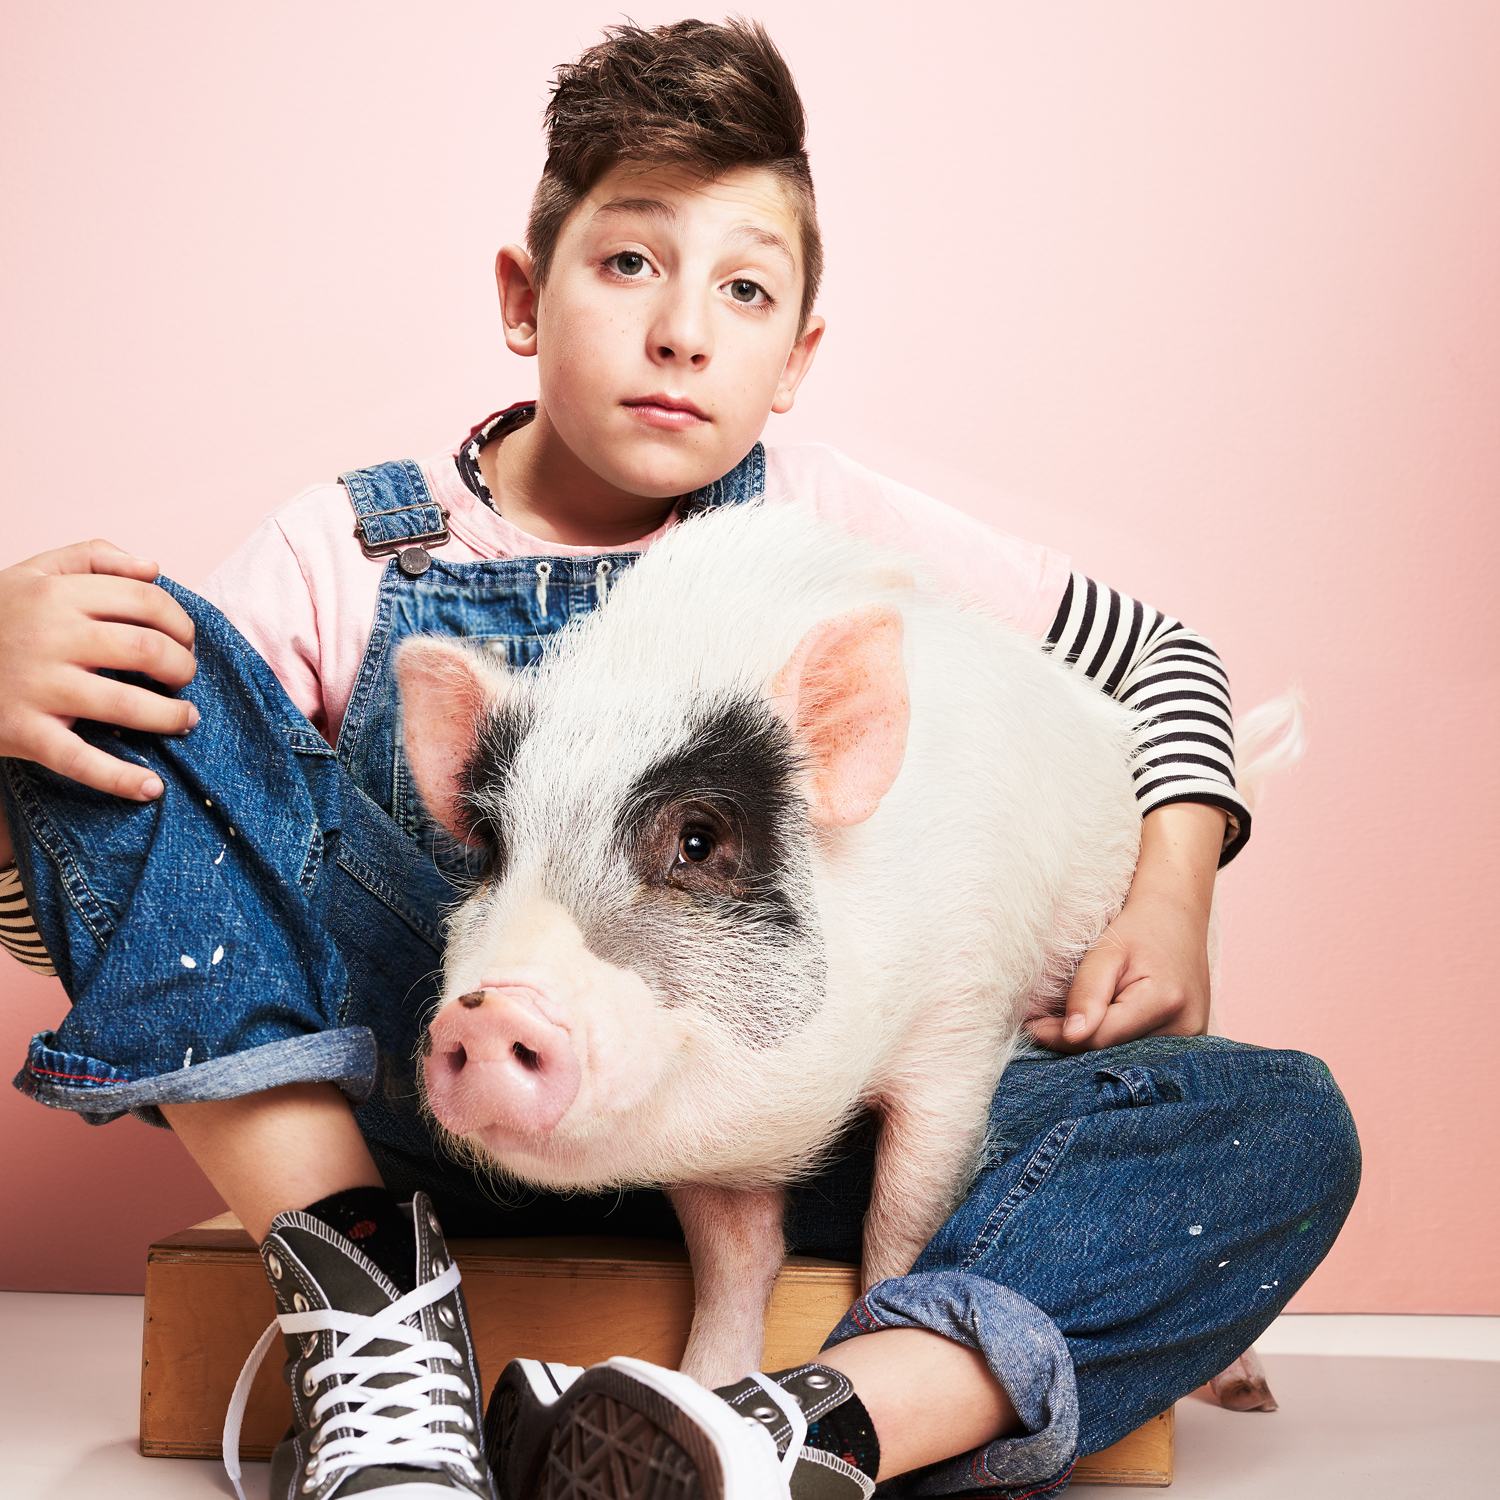 boy in denim overalls sitting with potbellied pig